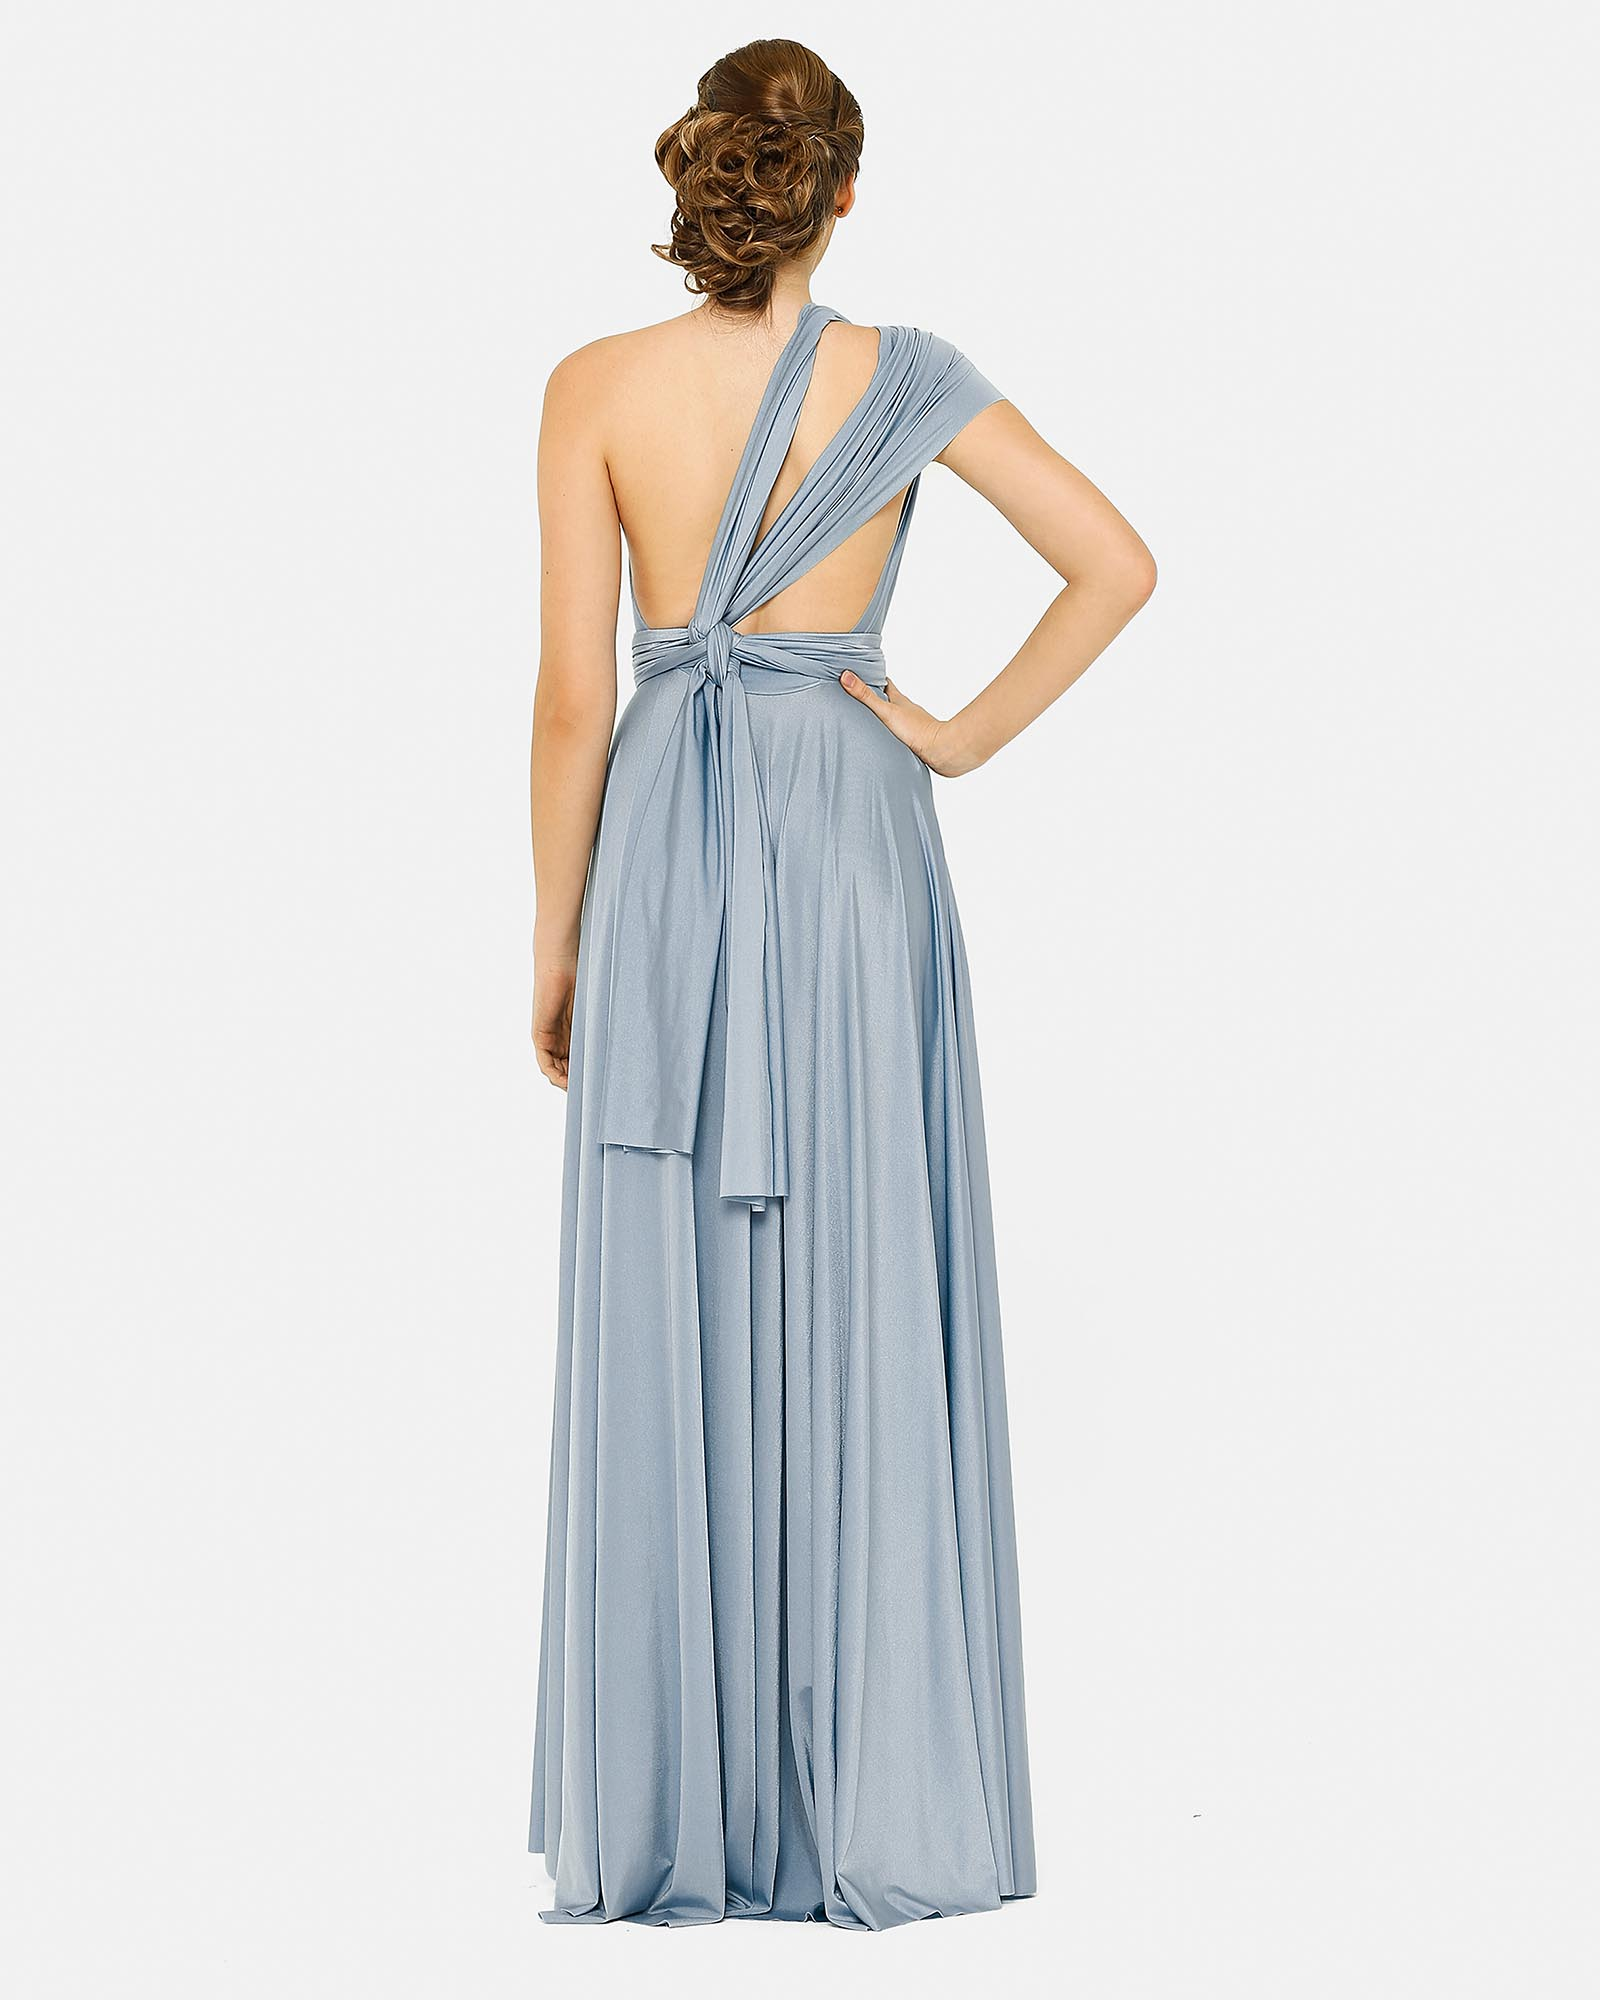 Dusty Blue Infinity Wrap Bridesmaids Dress By Tania Olsen